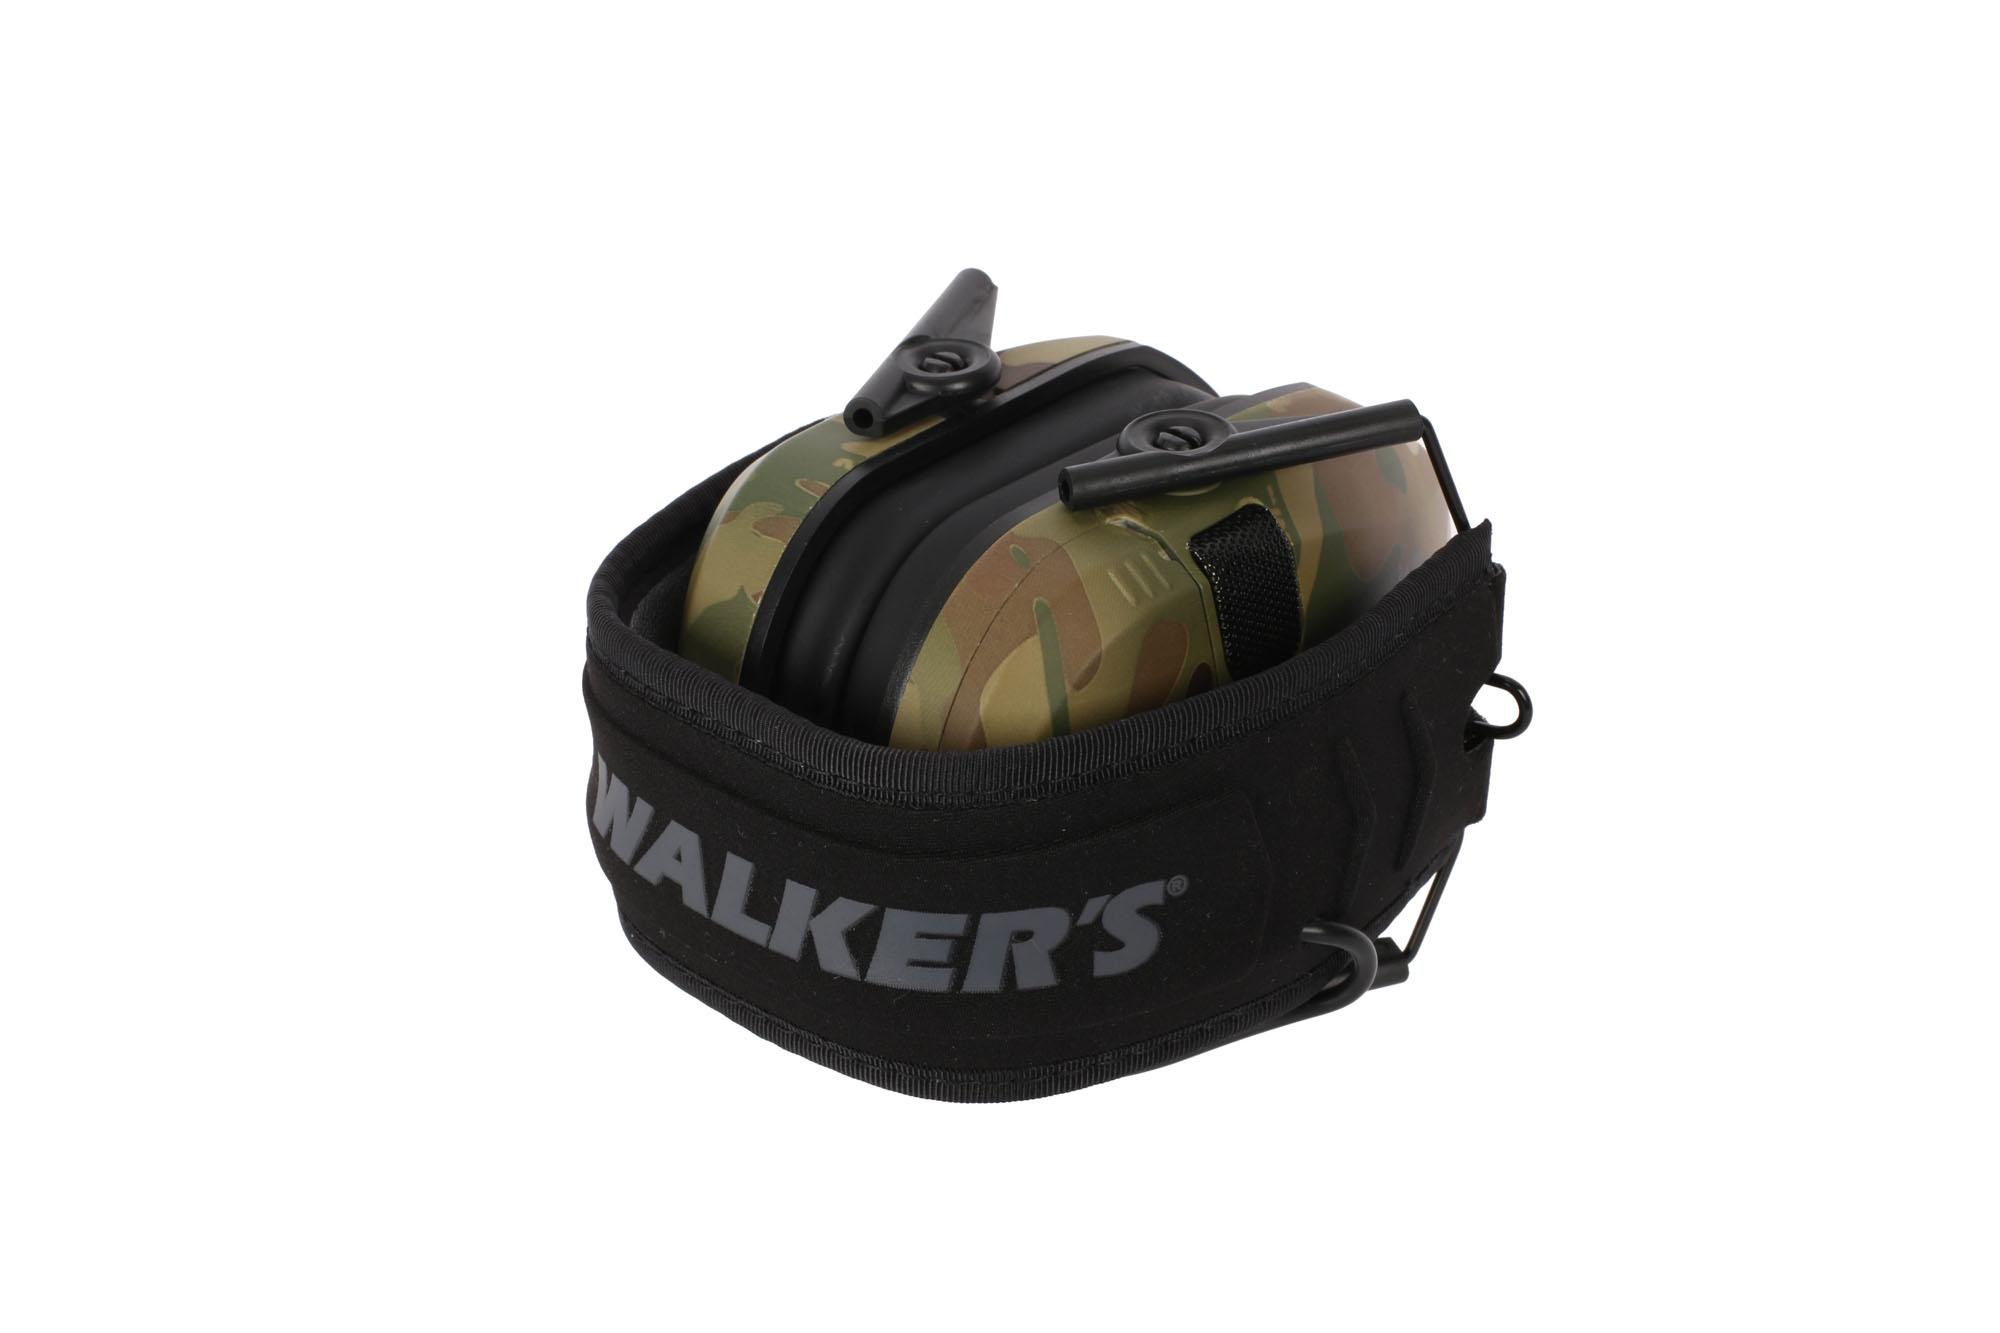 Walkers Razor Slim Electronic Hearing Muffs fold compact with a MultiCam finish